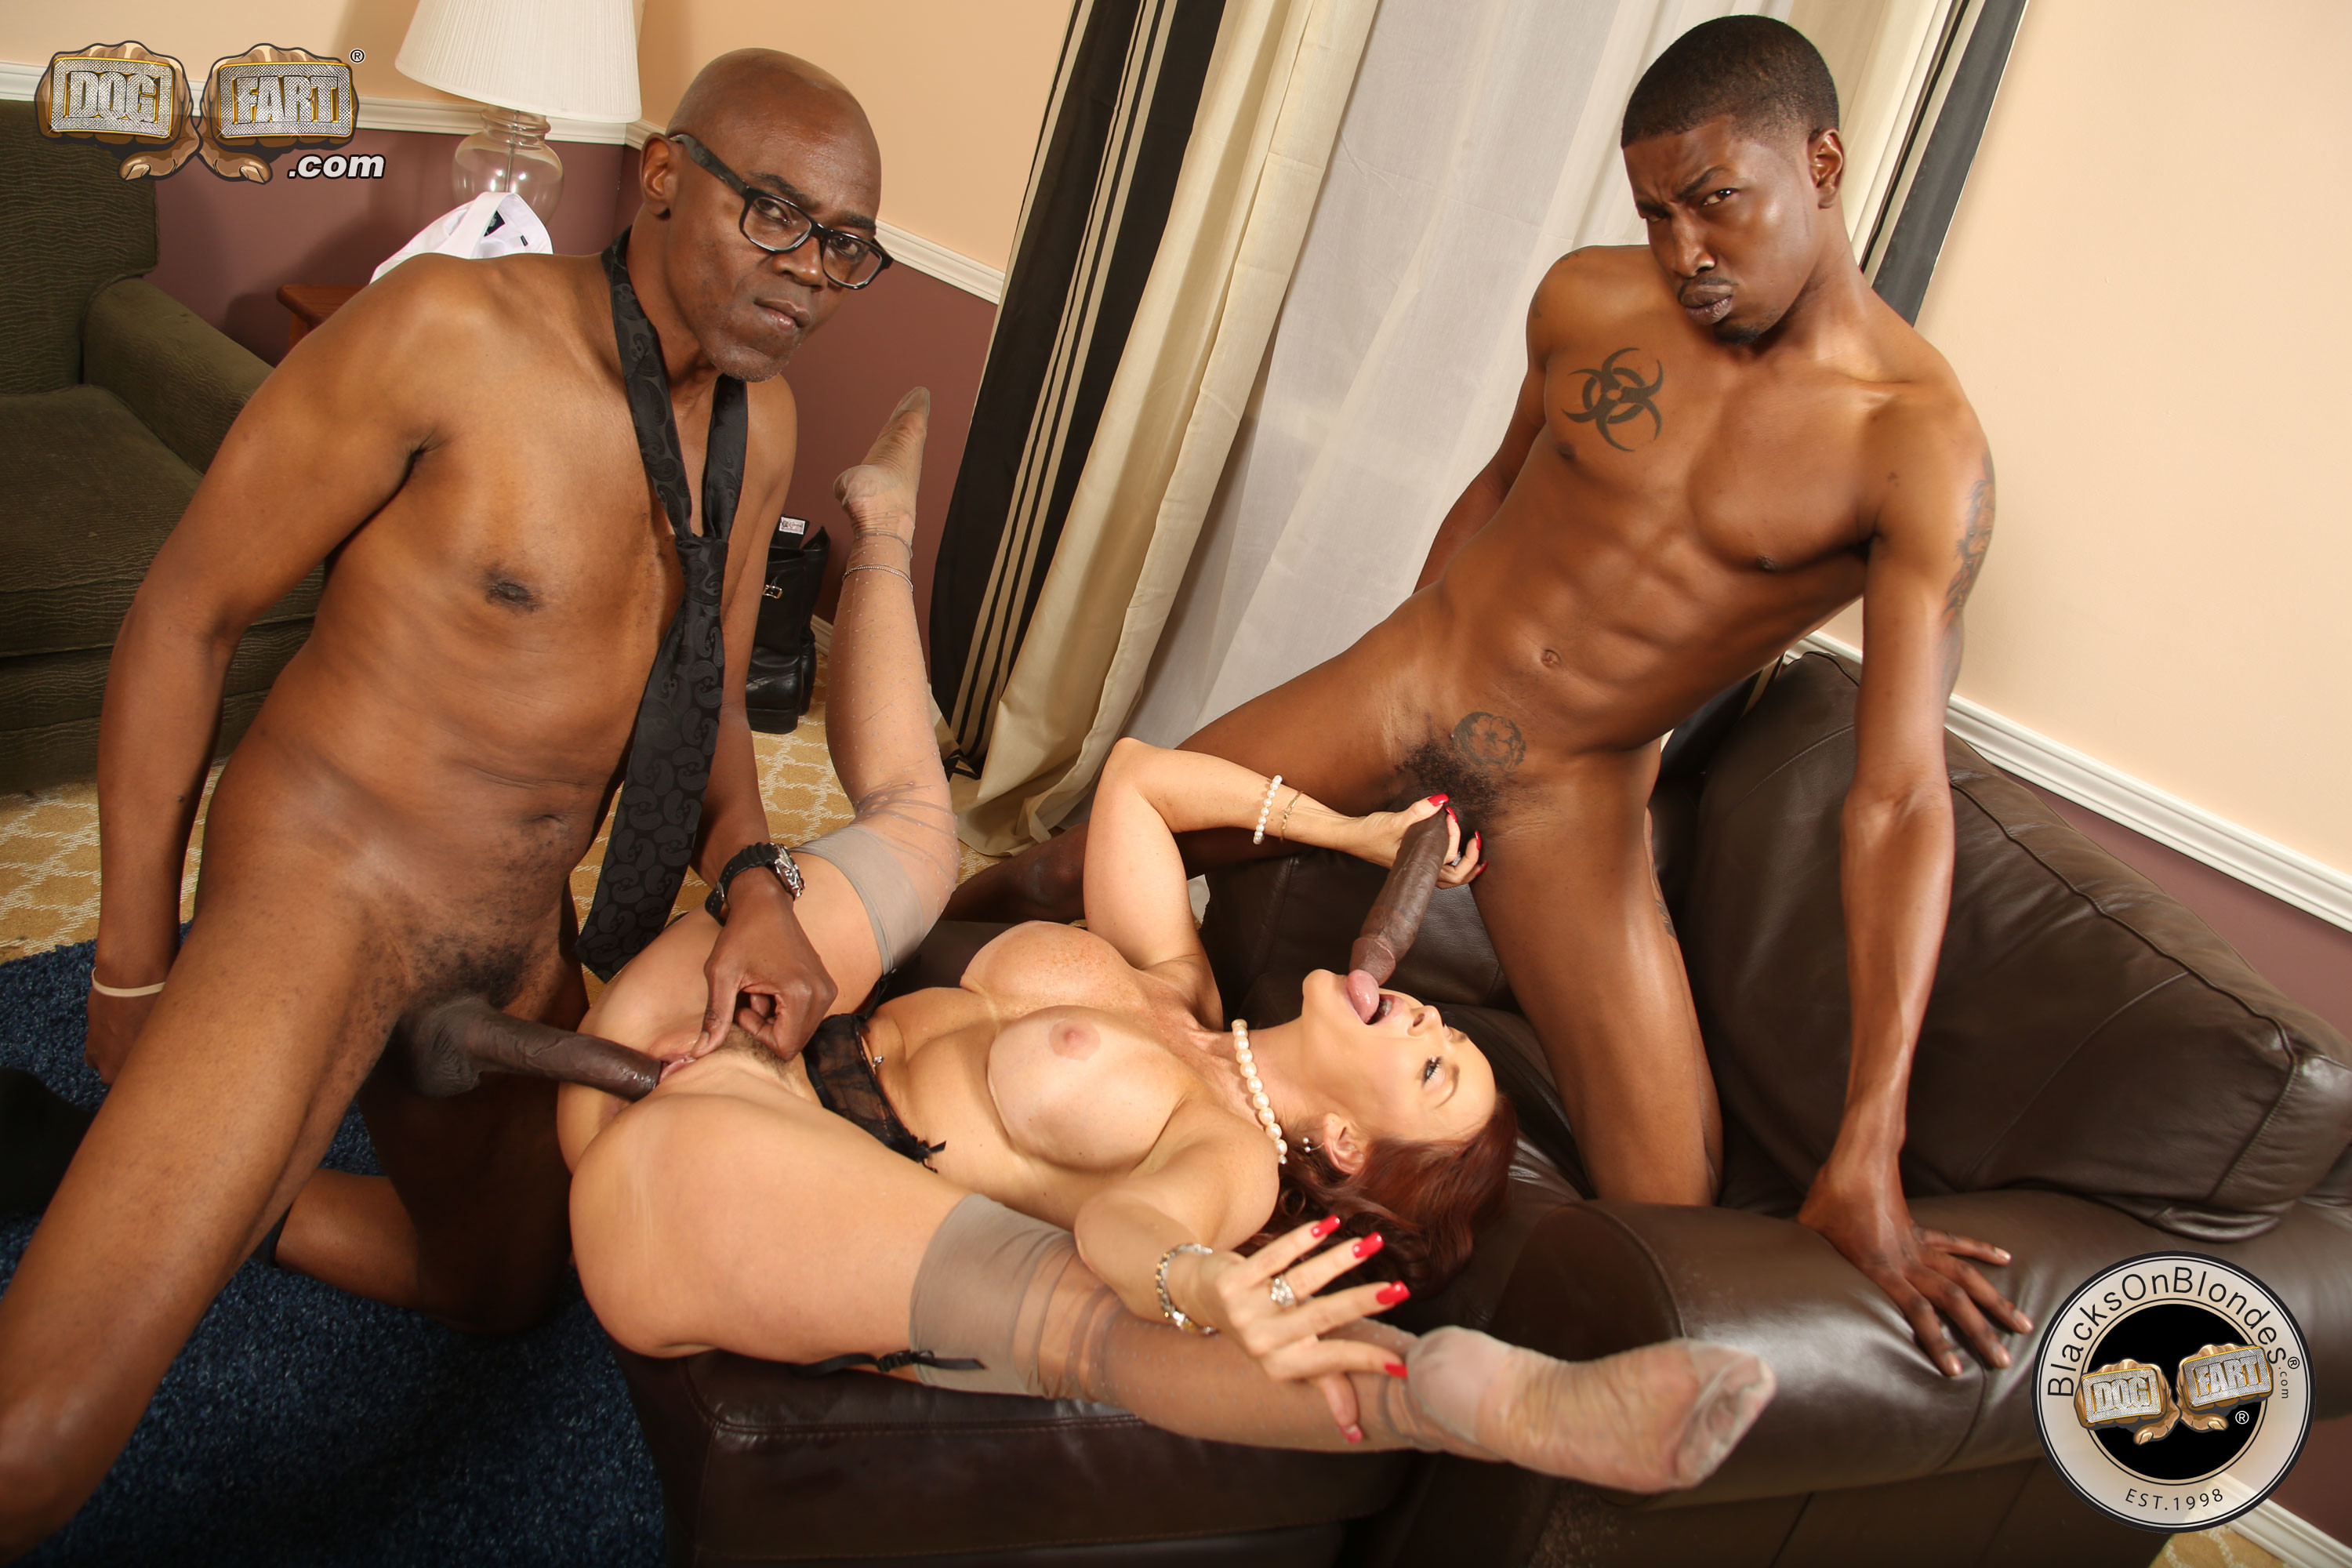 angie noir mom relieves sons morning wood anm